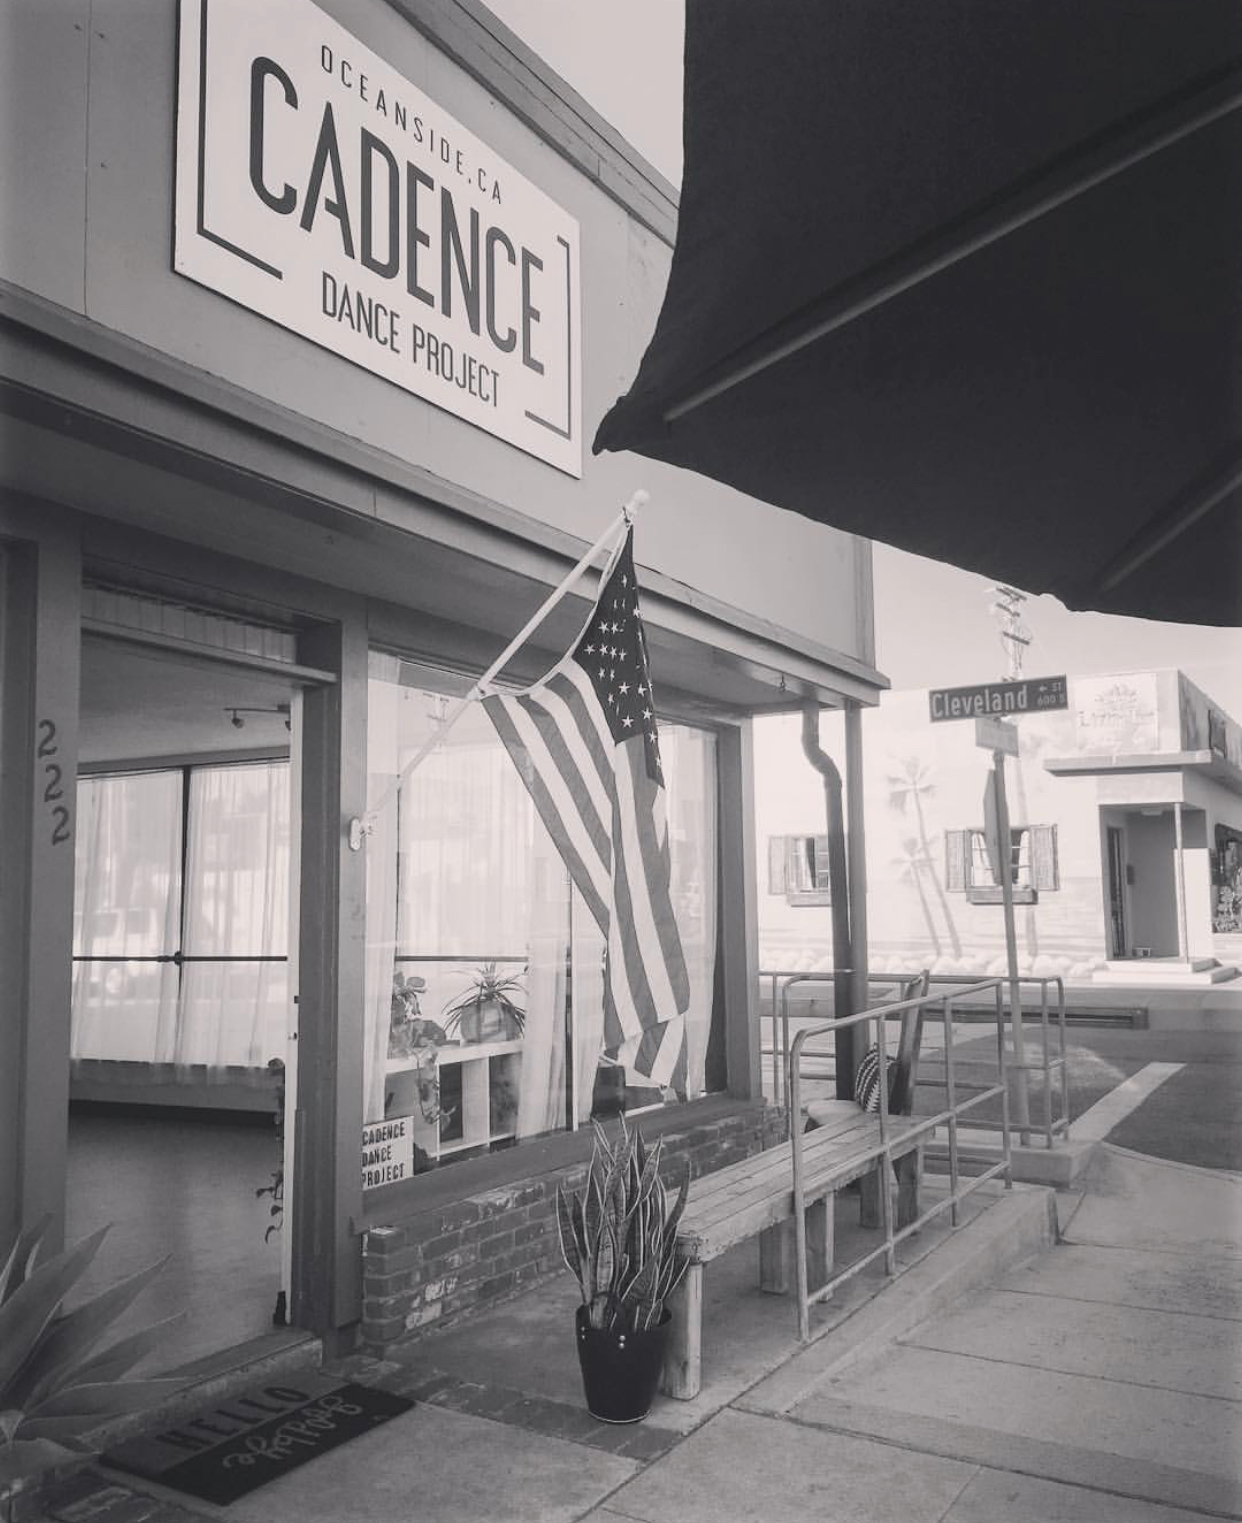 We are so excited to announce that CADENCE DANCE PROJECT will be expanding! We will be having a second dance room and front office/lobby by the beginning of 2018! Thank you so much for being a part of the growth of CADENCE DANCE PROJECT and we look forward to working together to continue bringing movement and dance to Wisconsin Ave. in Oceanside.